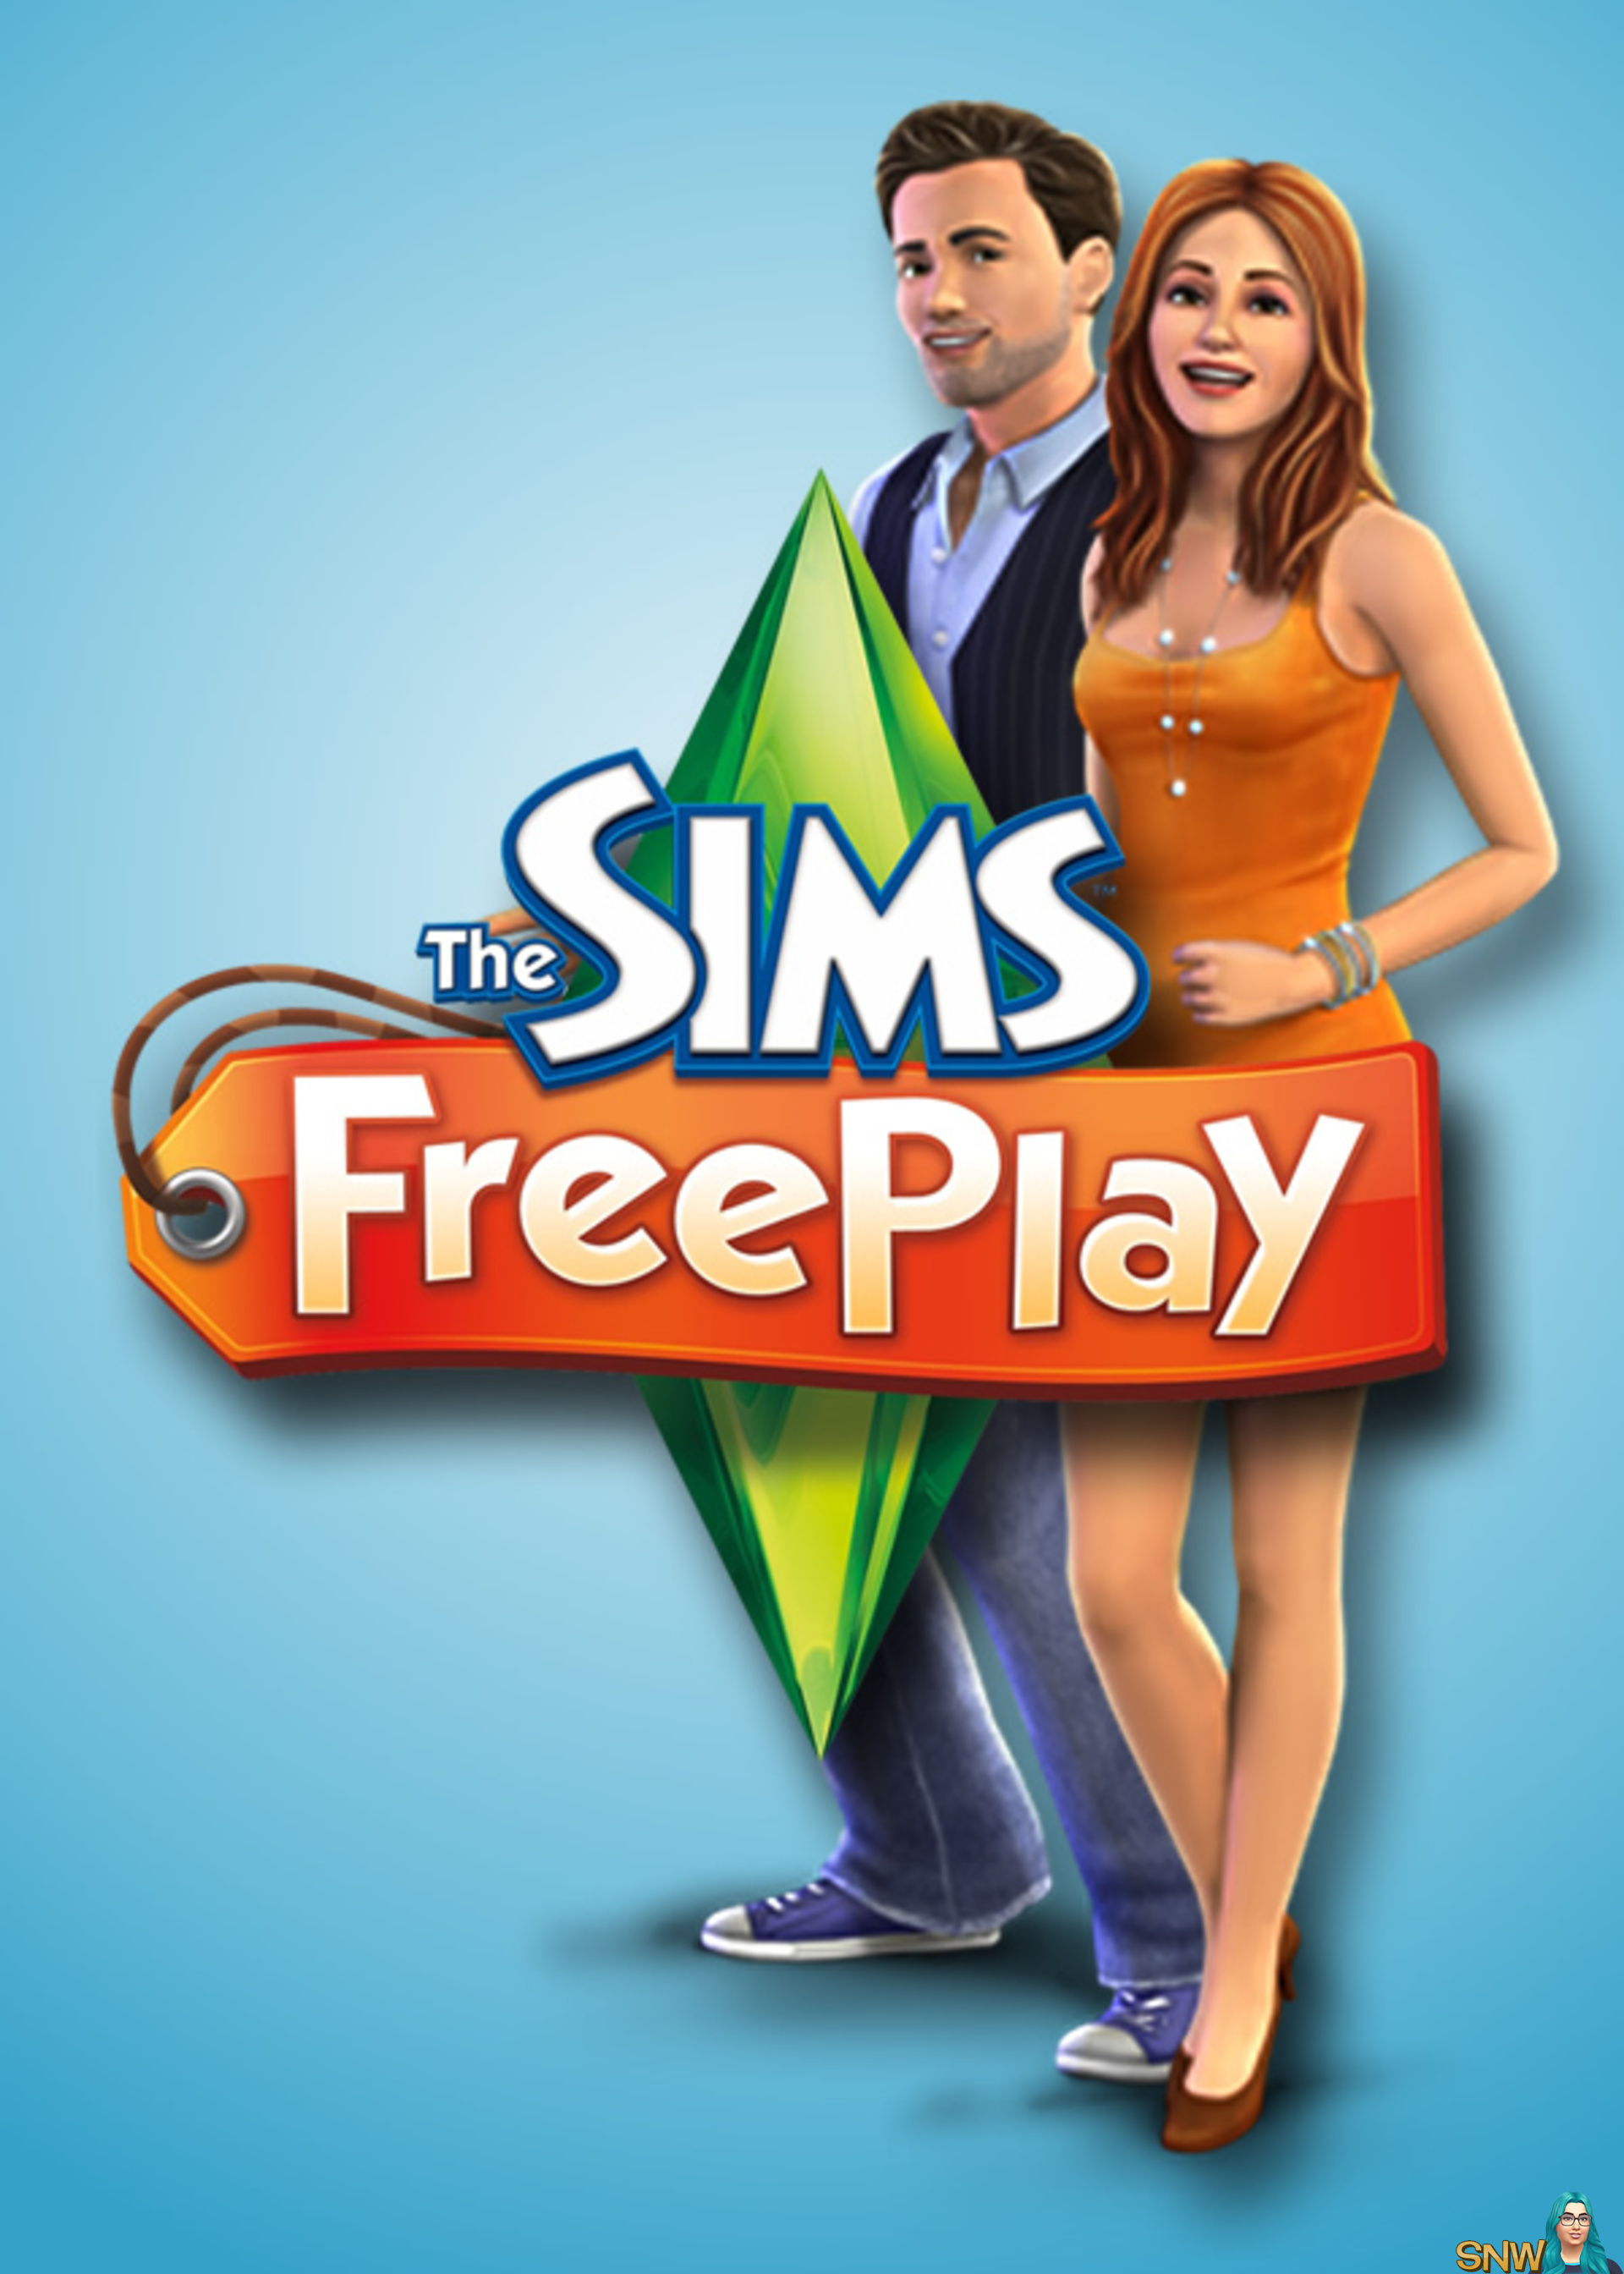 The Sims Freeplay Snw Simsnetwork Com